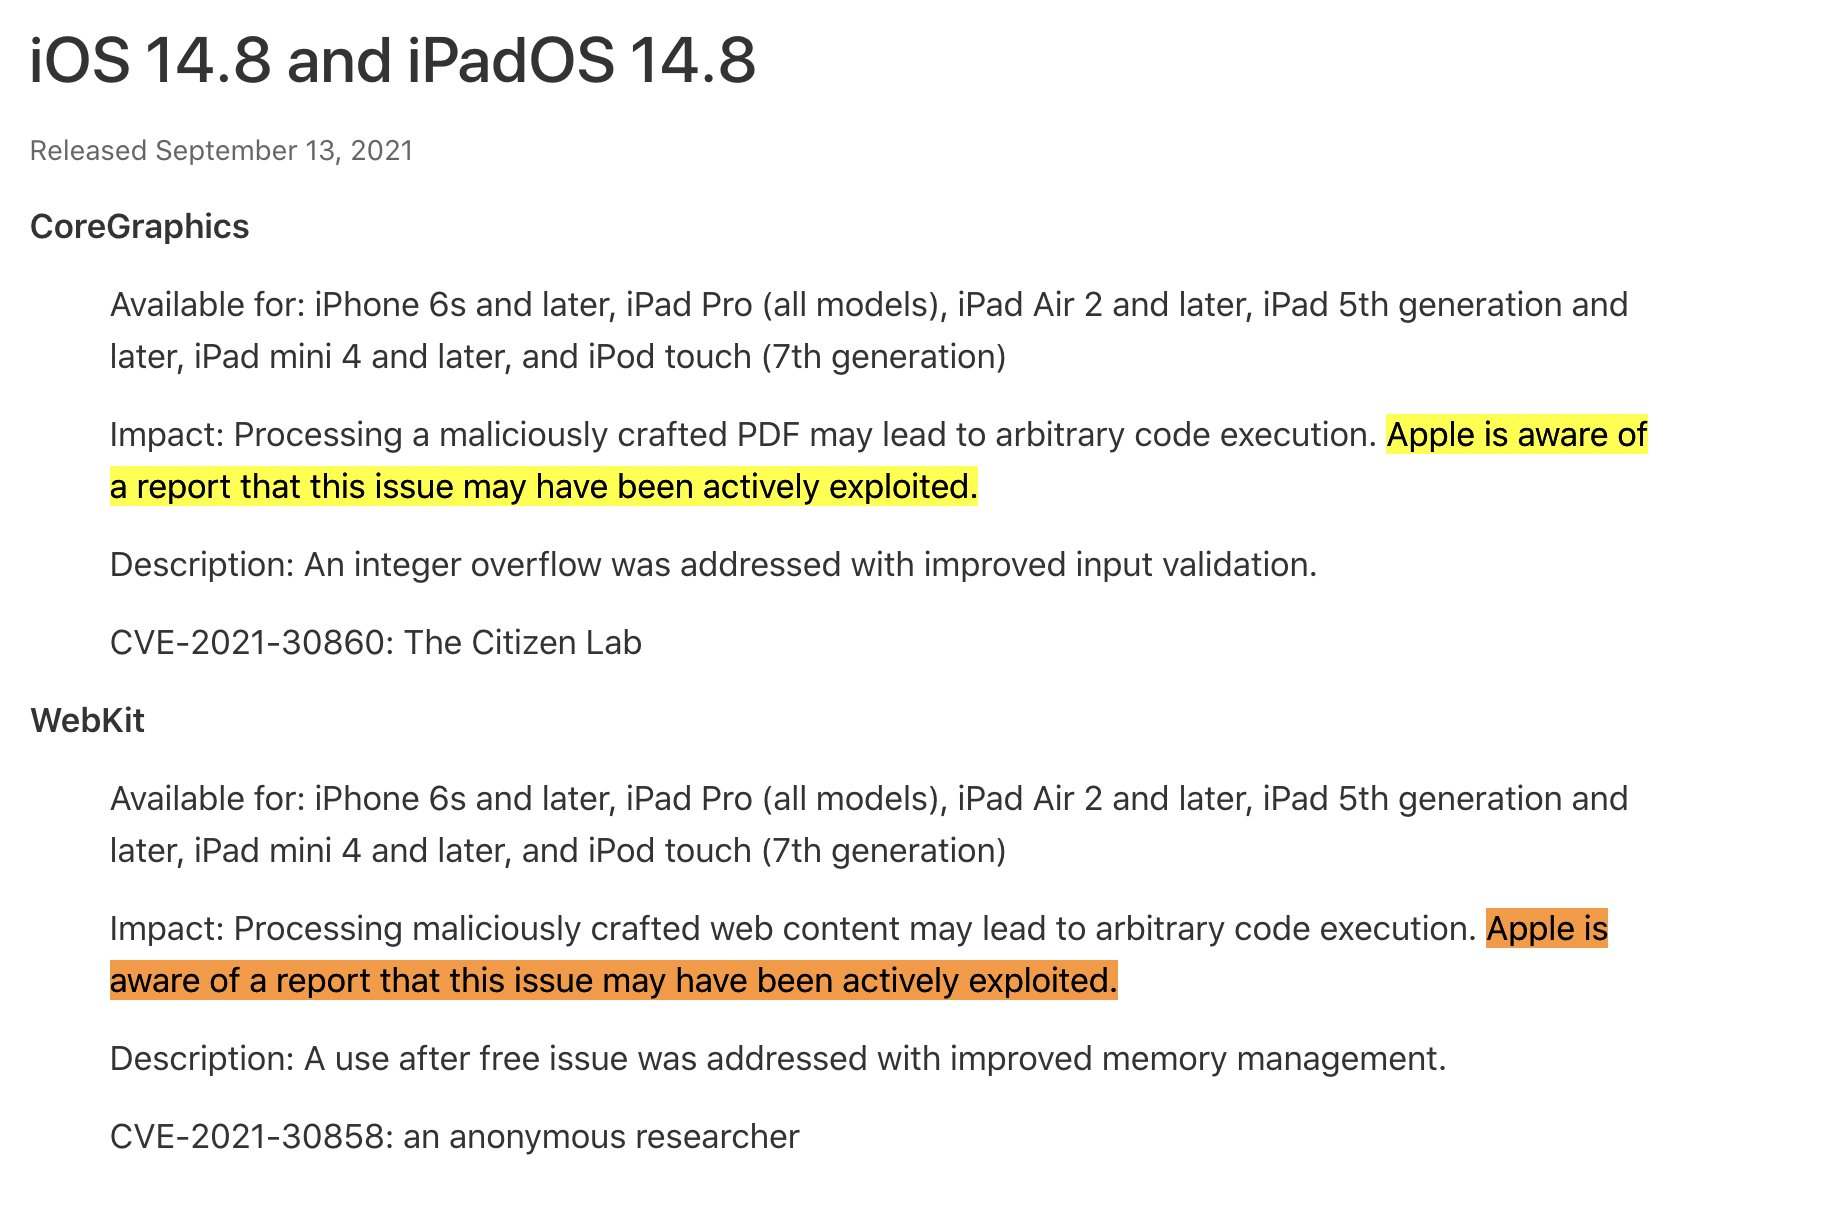 Apple releases updates to all iOS/iPad devices to fix security vulnerabilities